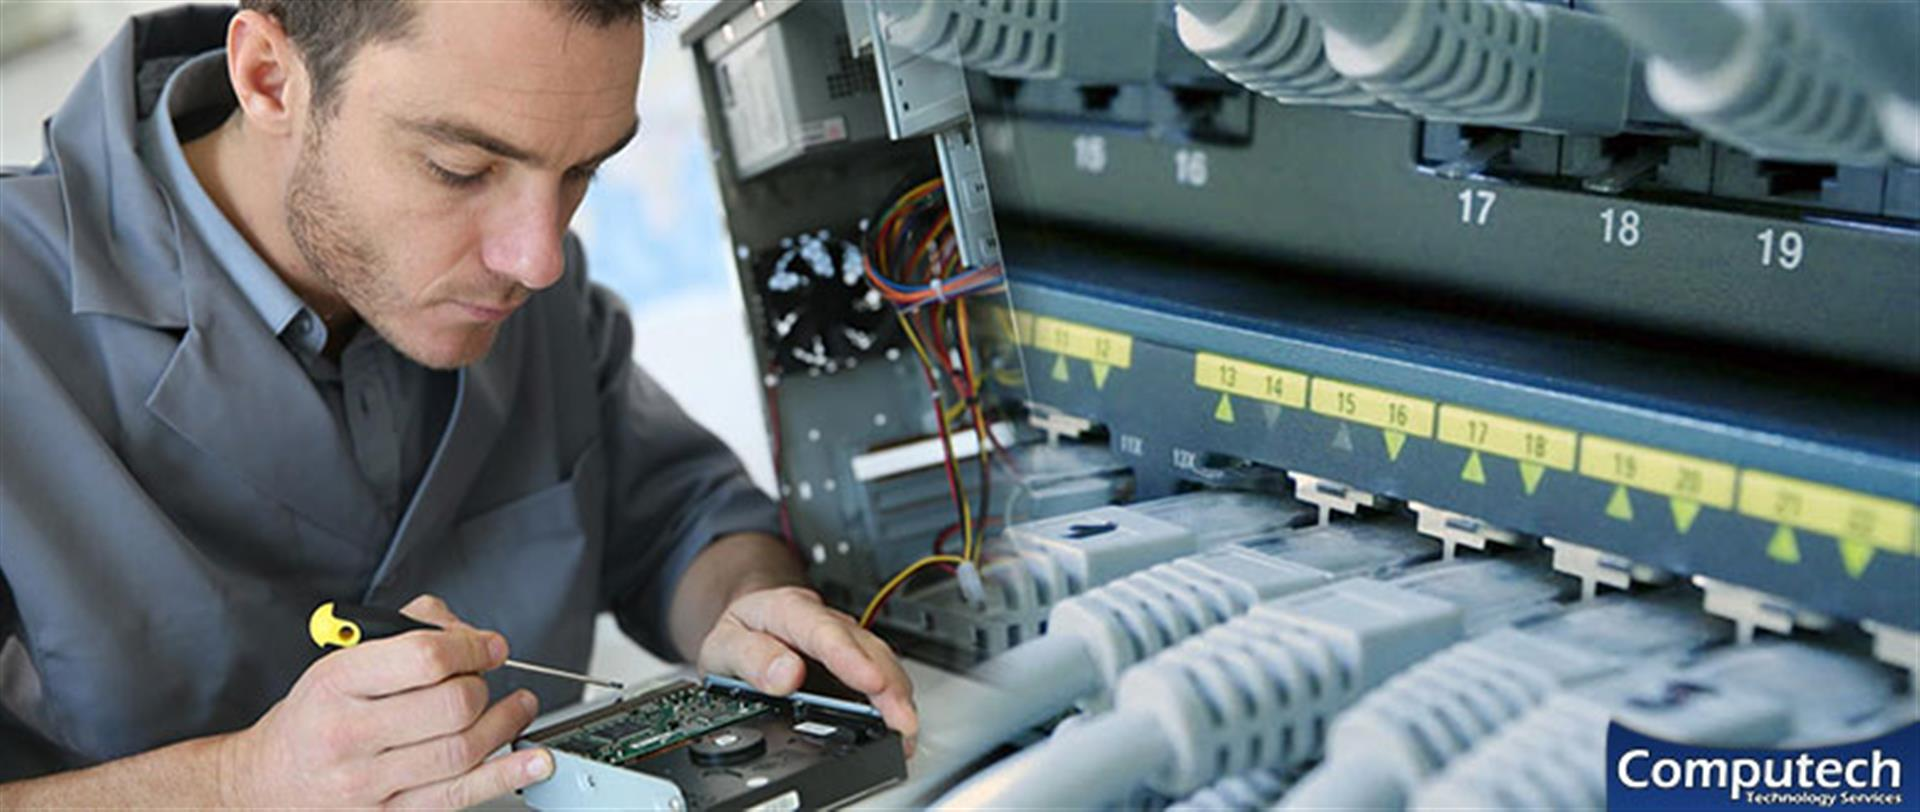 Grayson Georgia On Site Computer PC & Printer Repairs, Networking, Voice & Data Cabling Solutions